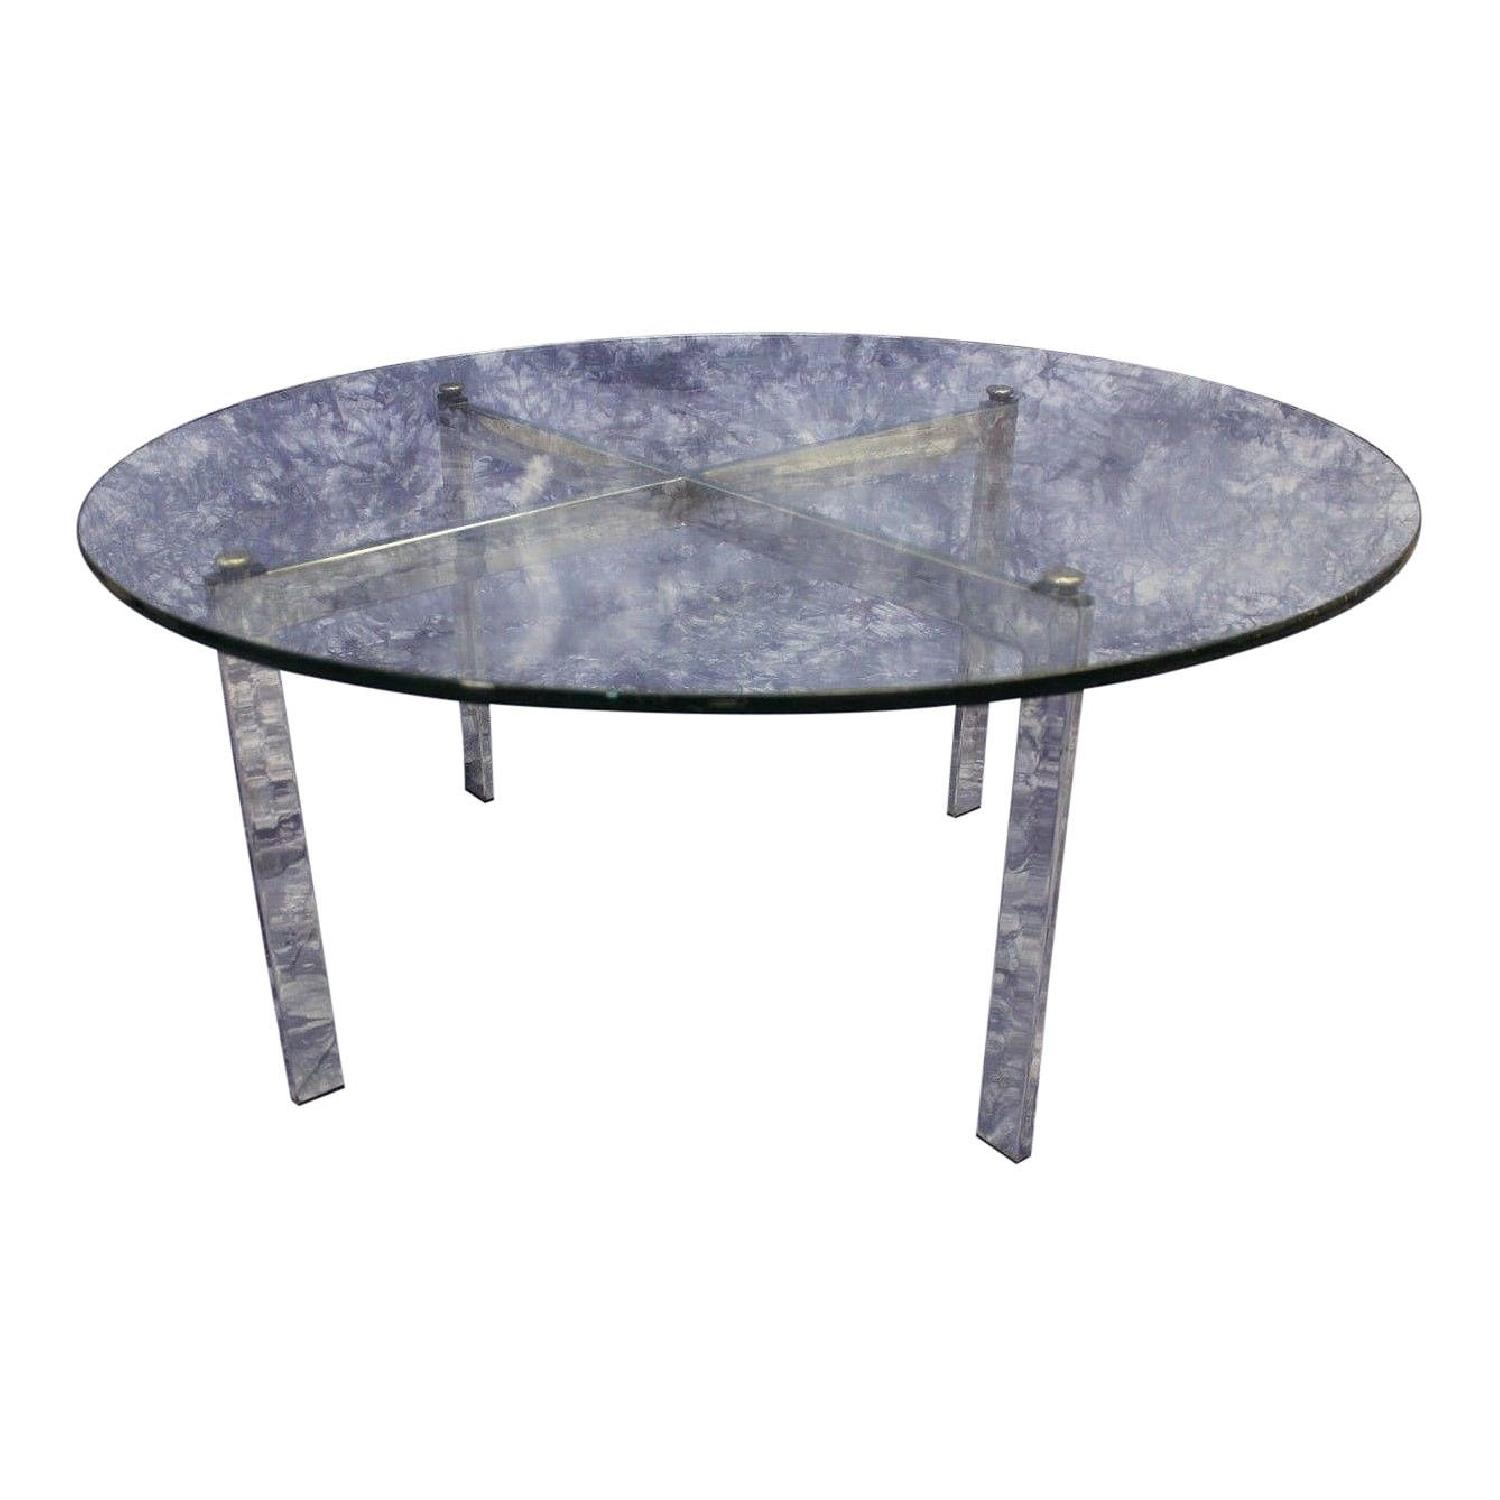 Round Glass Top Coffee Table Barcelona Mid Century Modern Round Glass Top Coffee Table